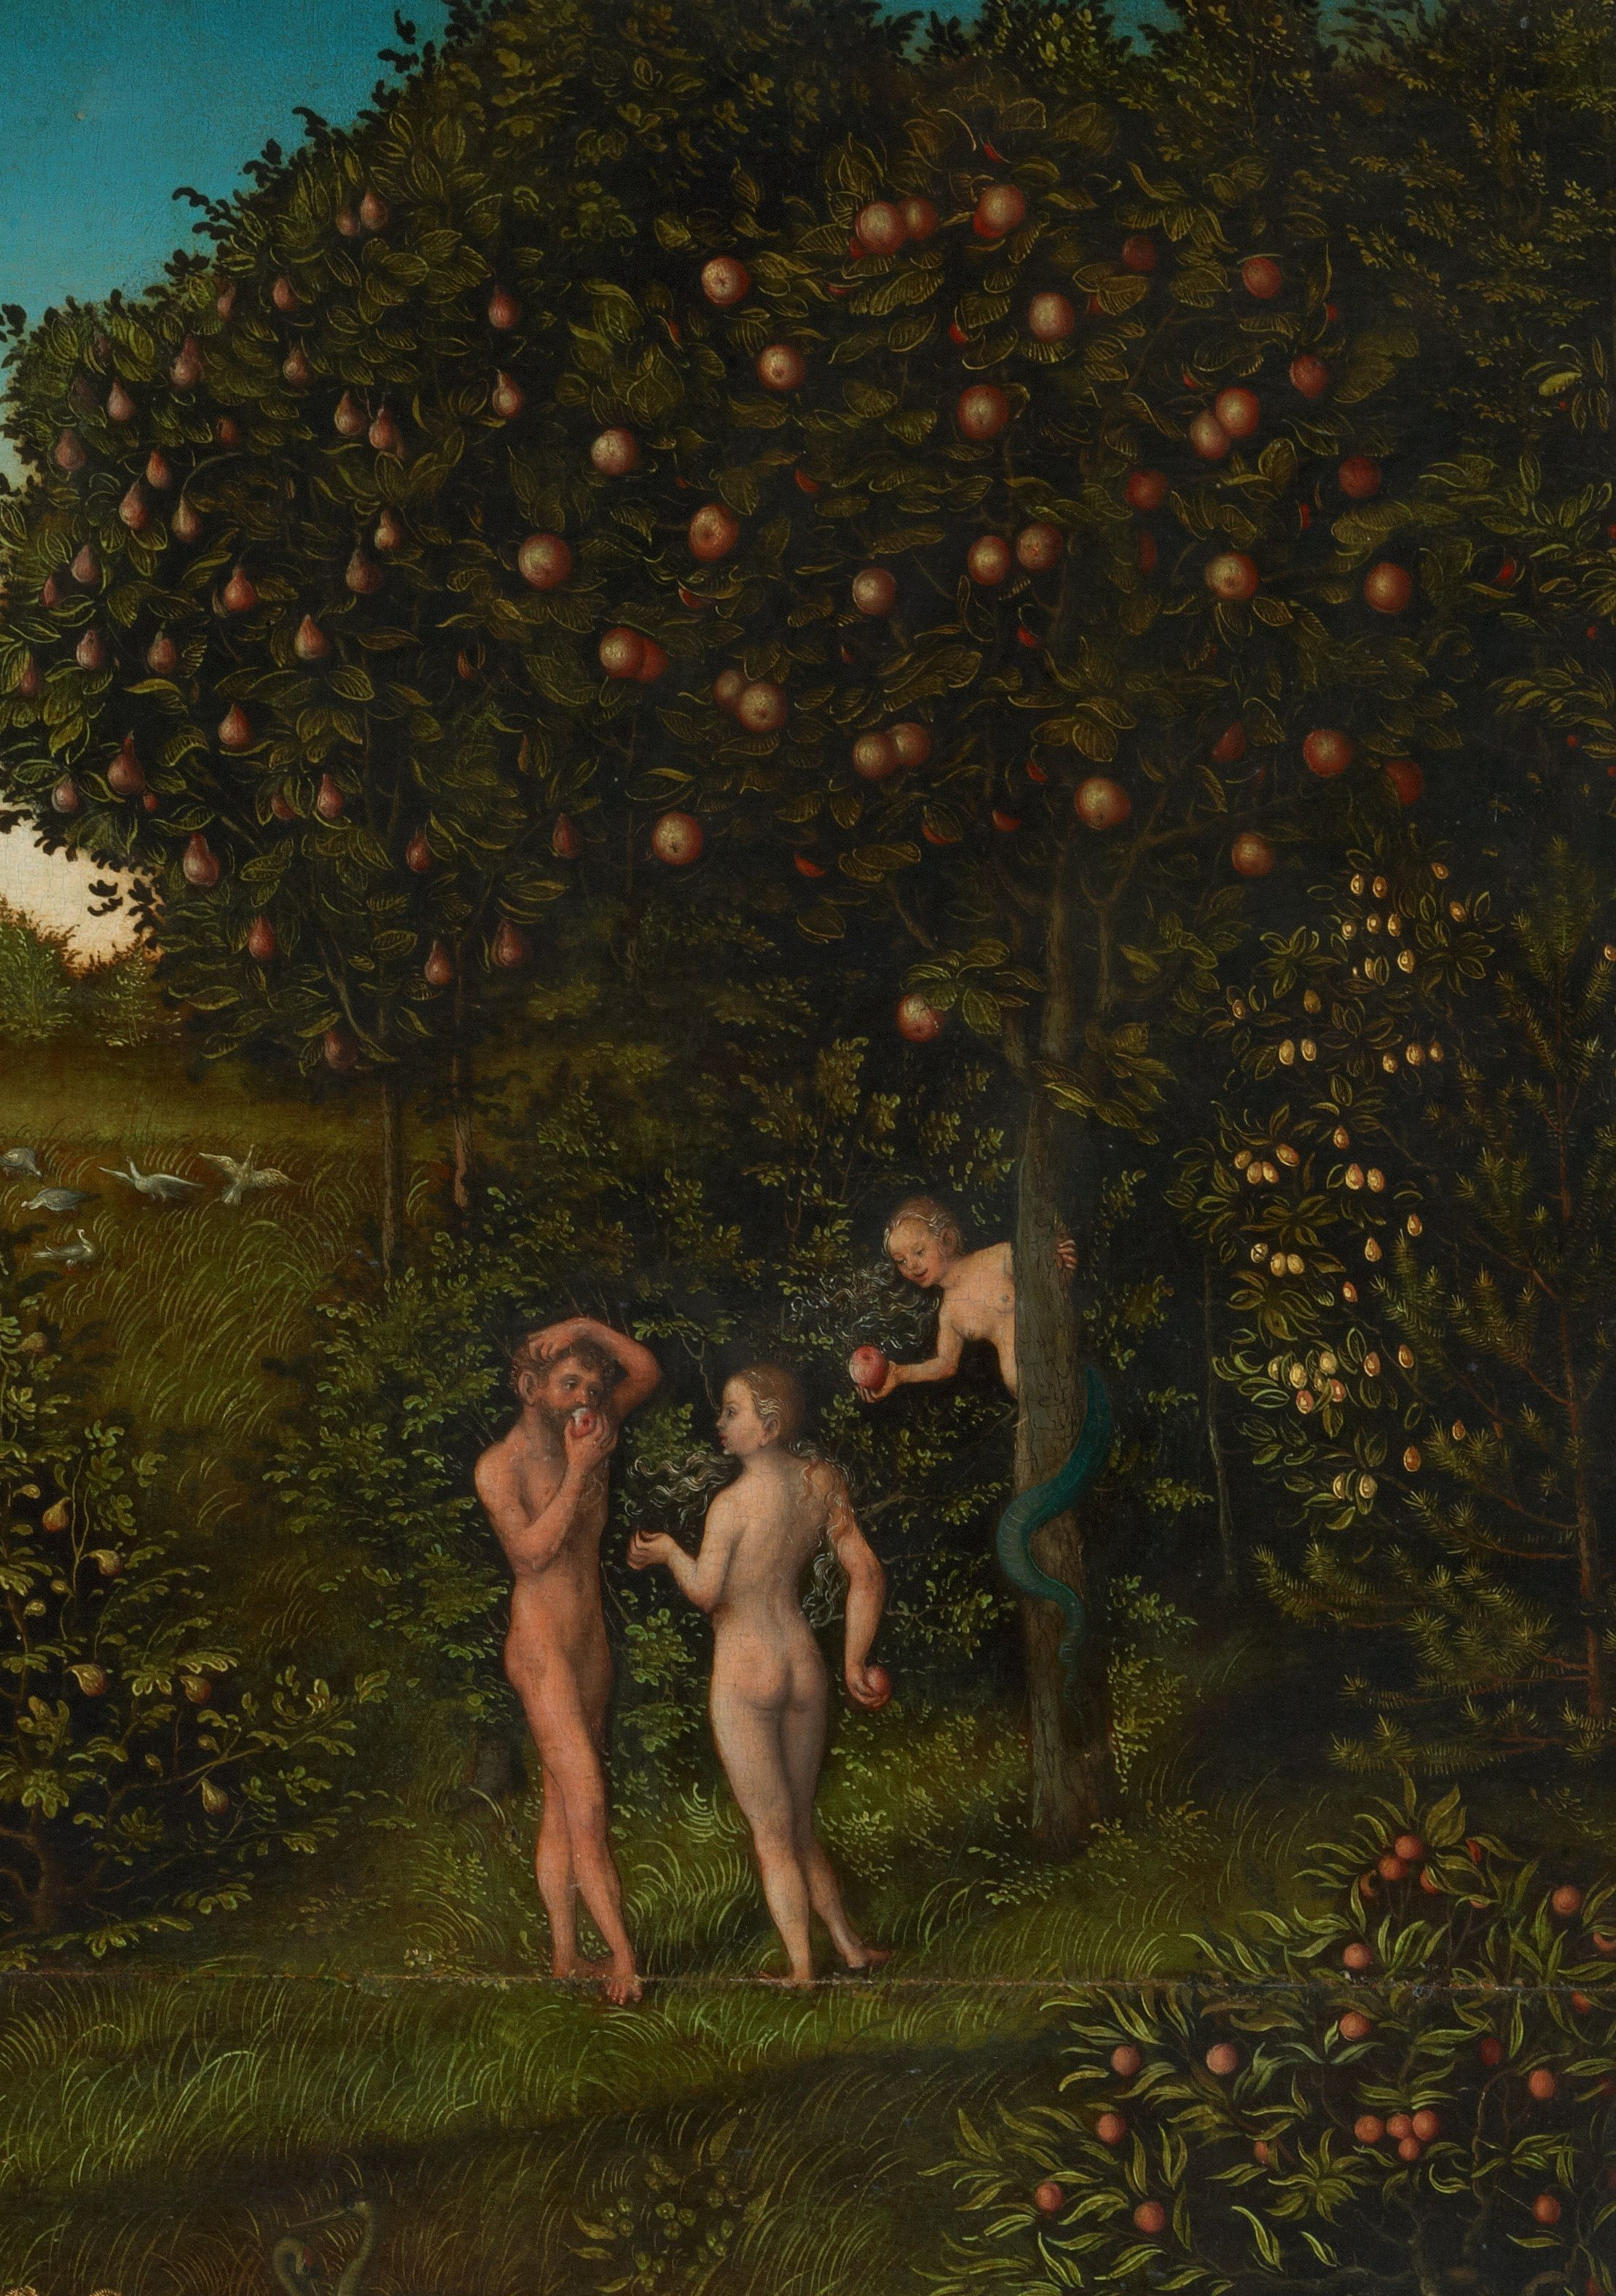 The Fall of Man by Lucas Cranach, a 16th-century German depiction of Eden, with the tree of life (left) and the tree of the knowledge of good and evil